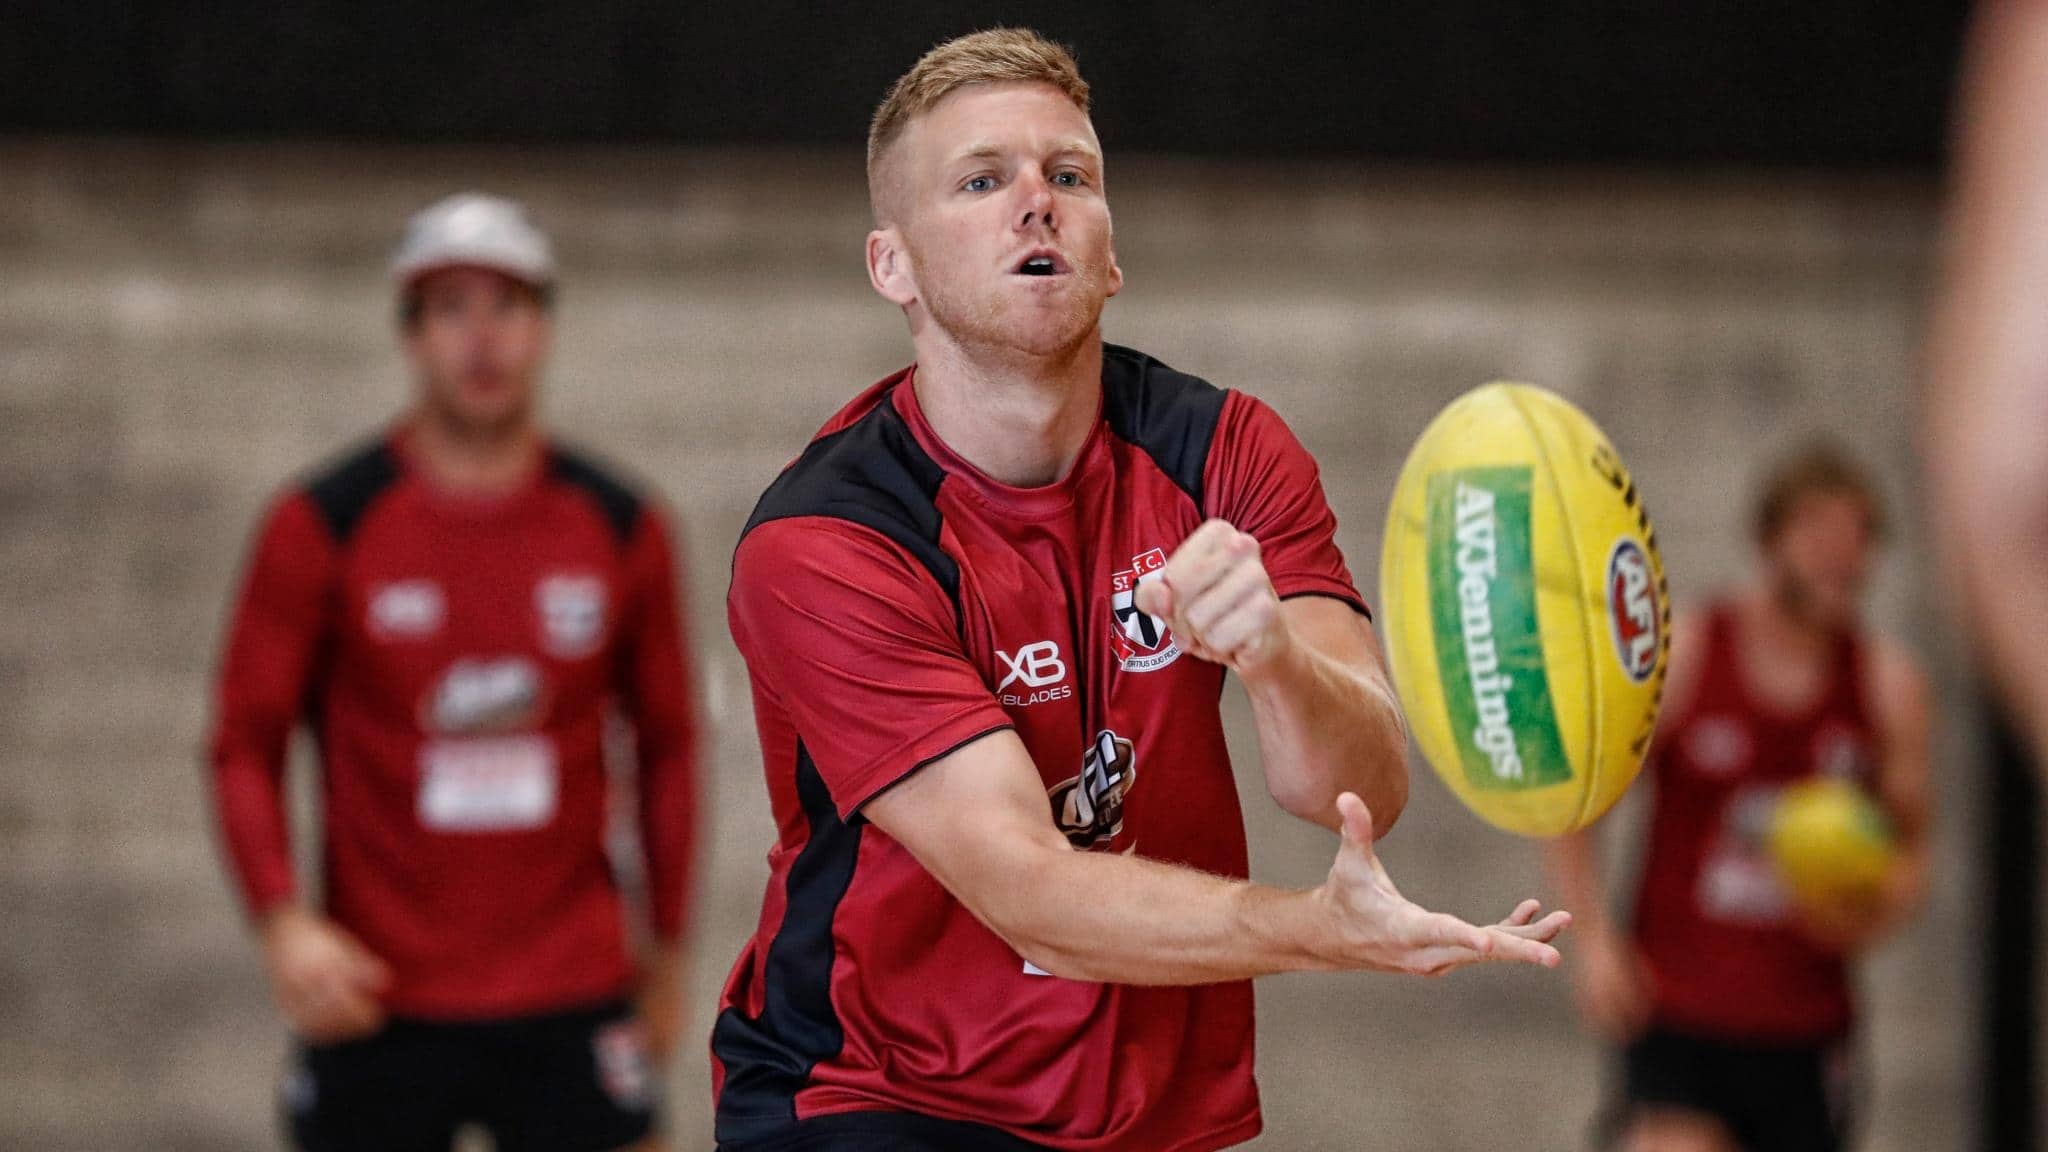 The Saints will be hoping for a change of luck for Dan Hannebery - AFL,St Kilda Saints,Dan Hannebery,Injuries